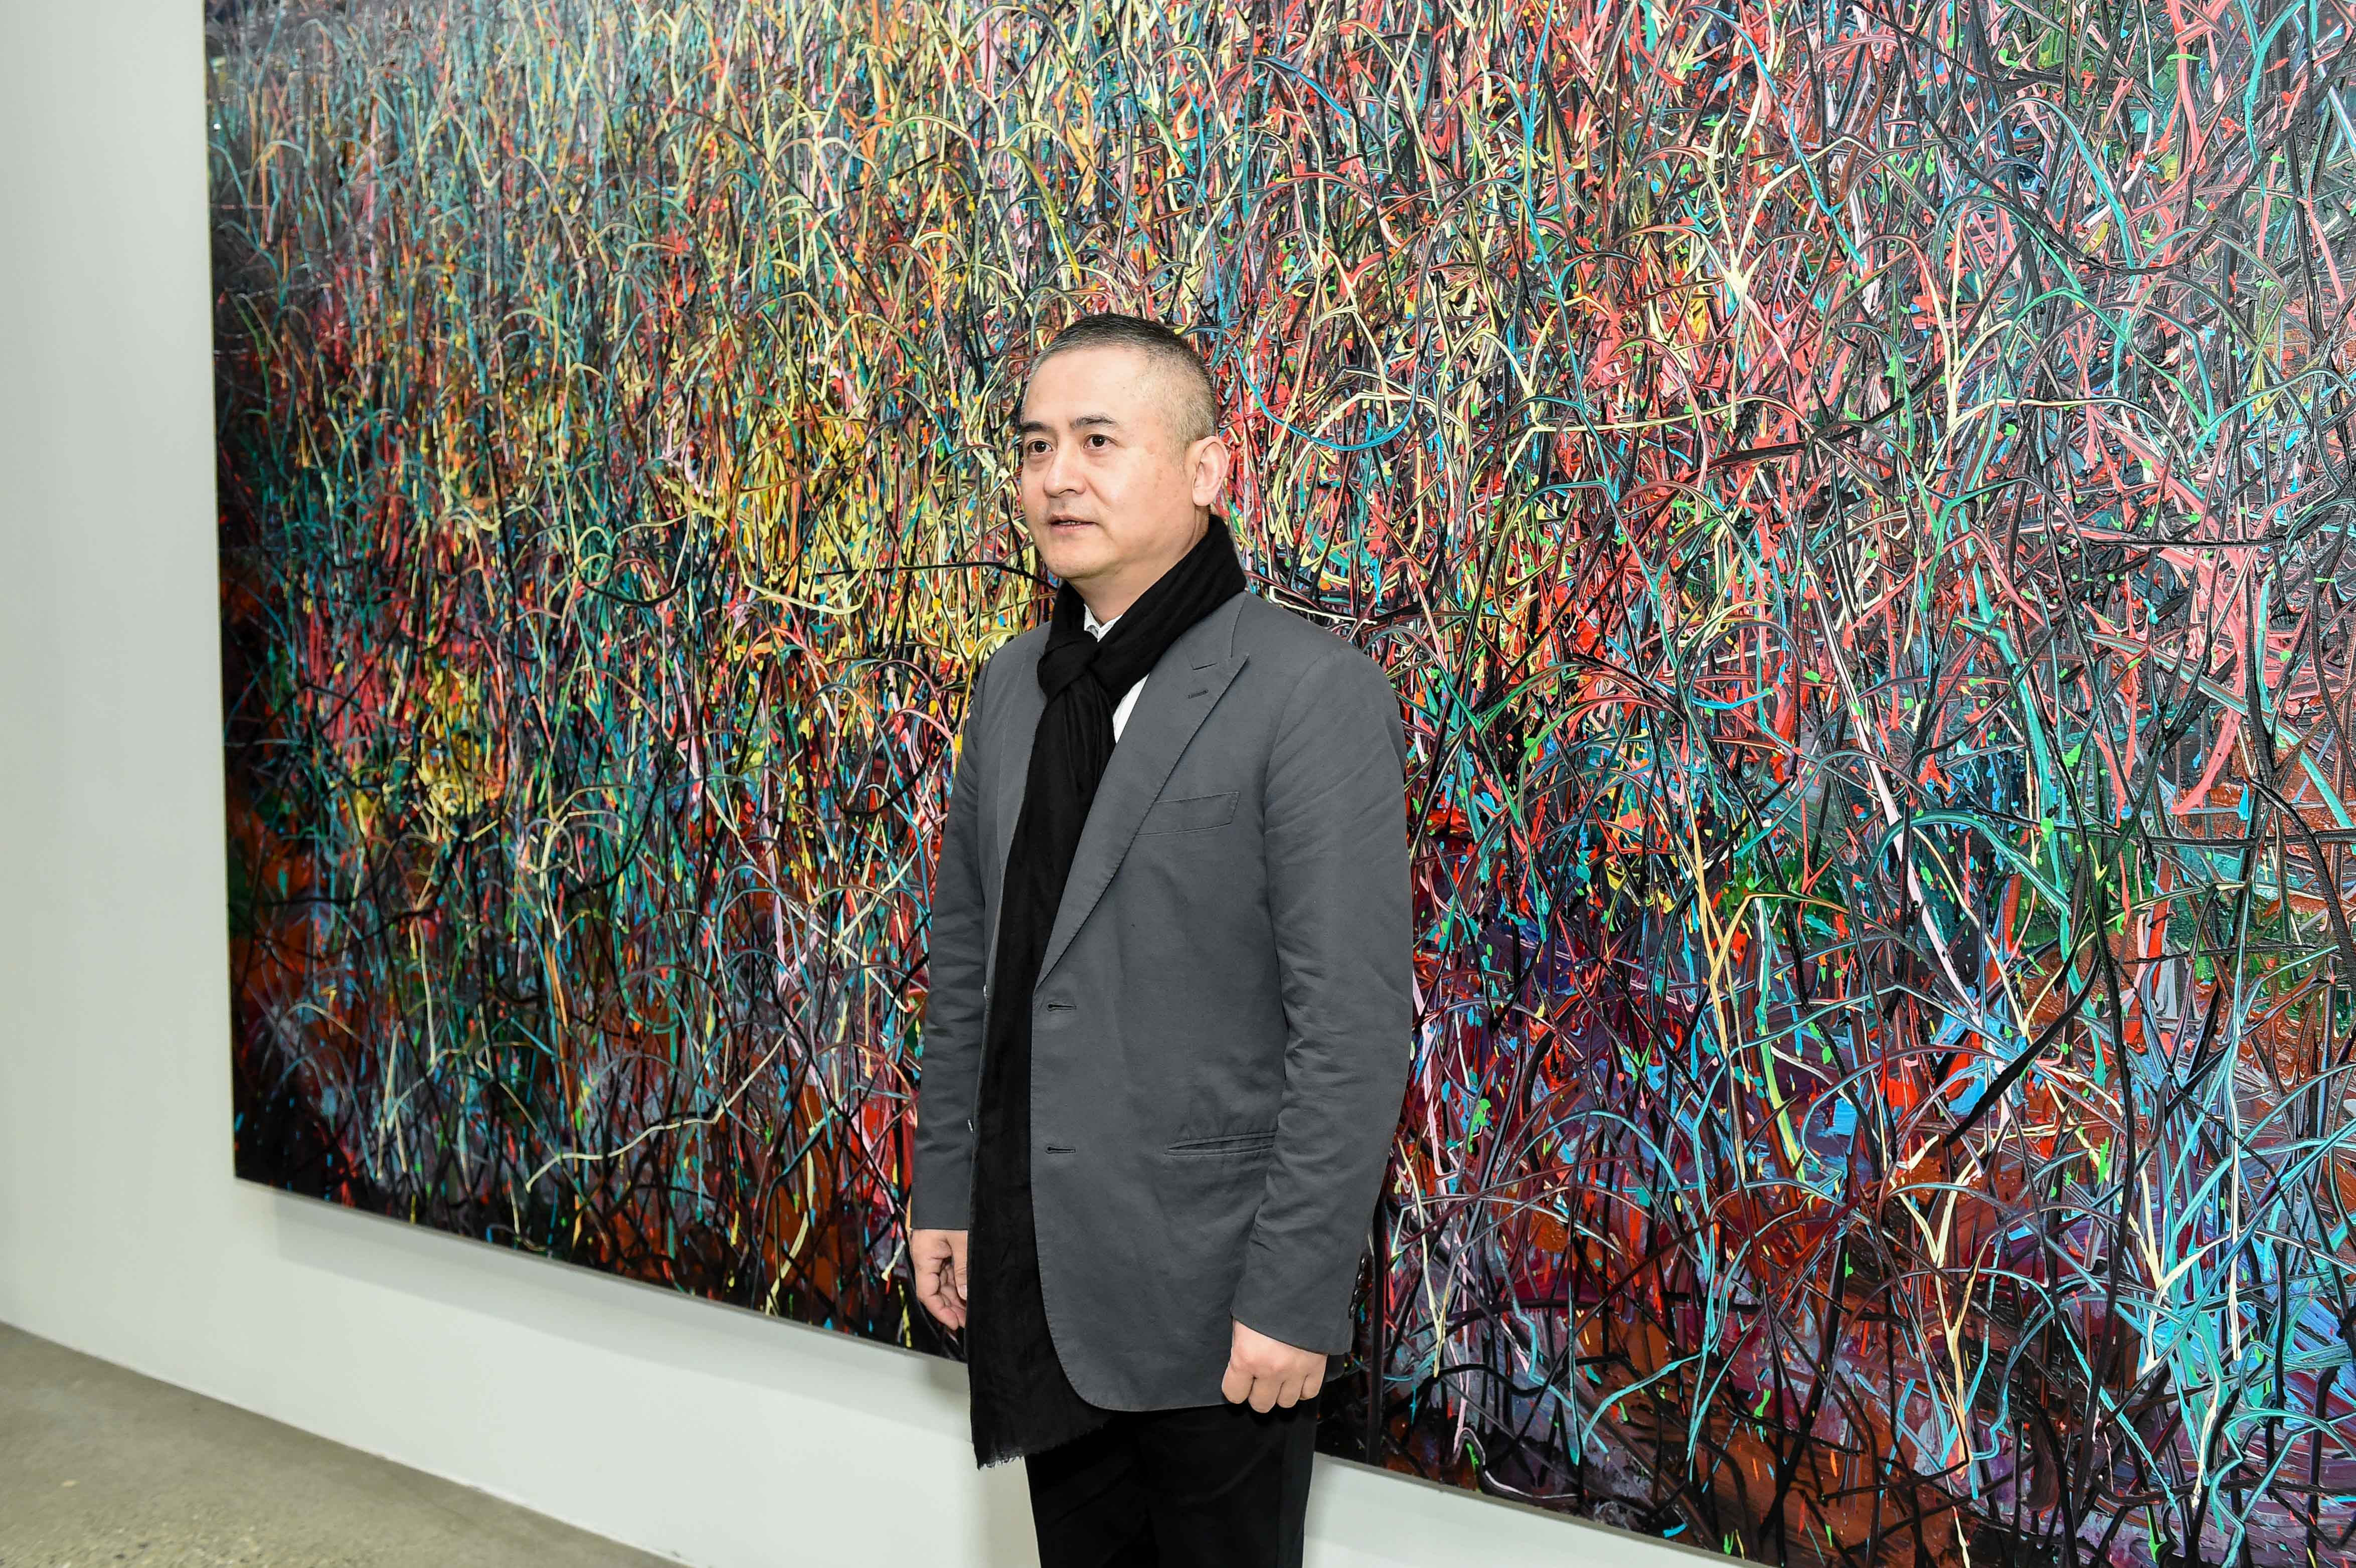 Artist Zeng Fanzhi in front of his painting, Untitled